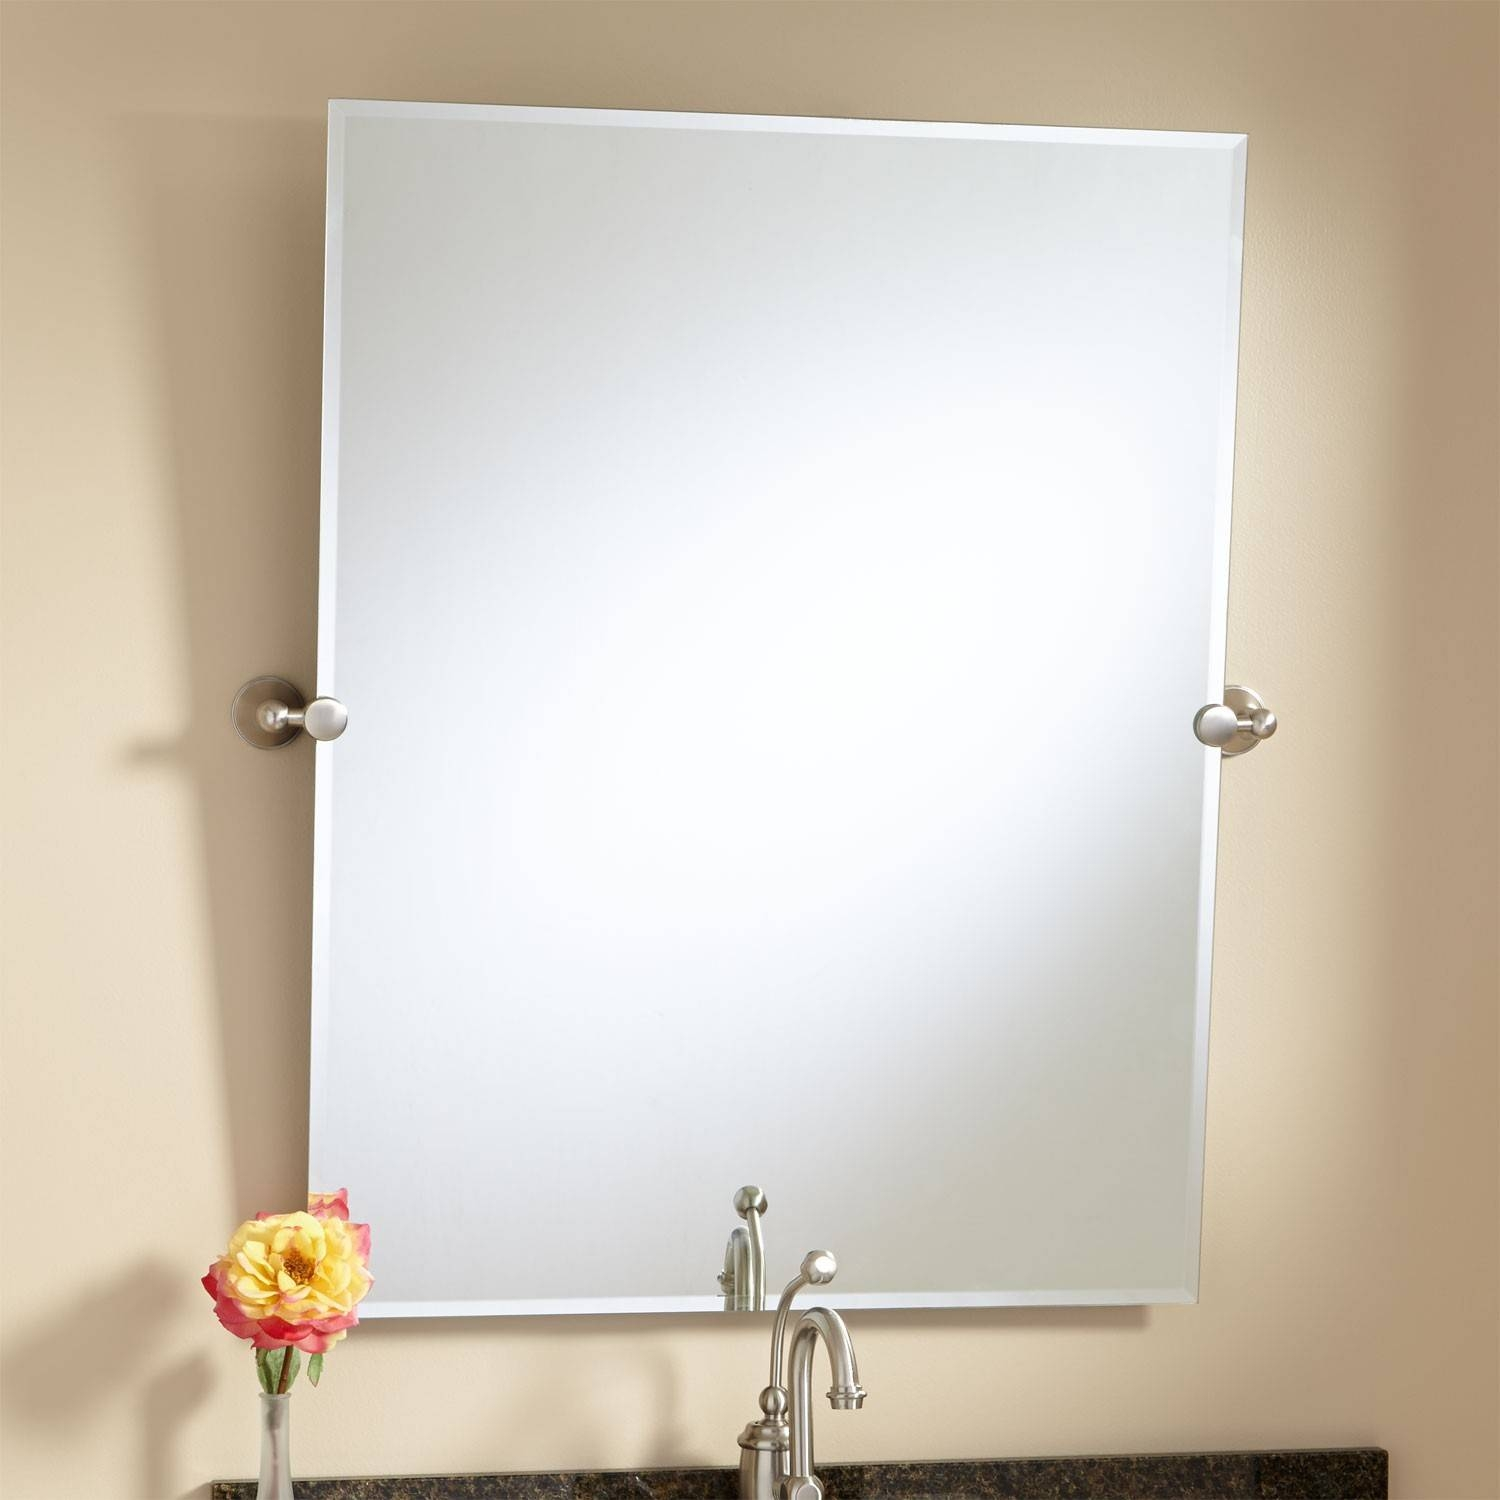 Frameless Bathroom Mirrors | Signature Hardware Pertaining To Antique Frameless Mirrors (View 22 of 25)